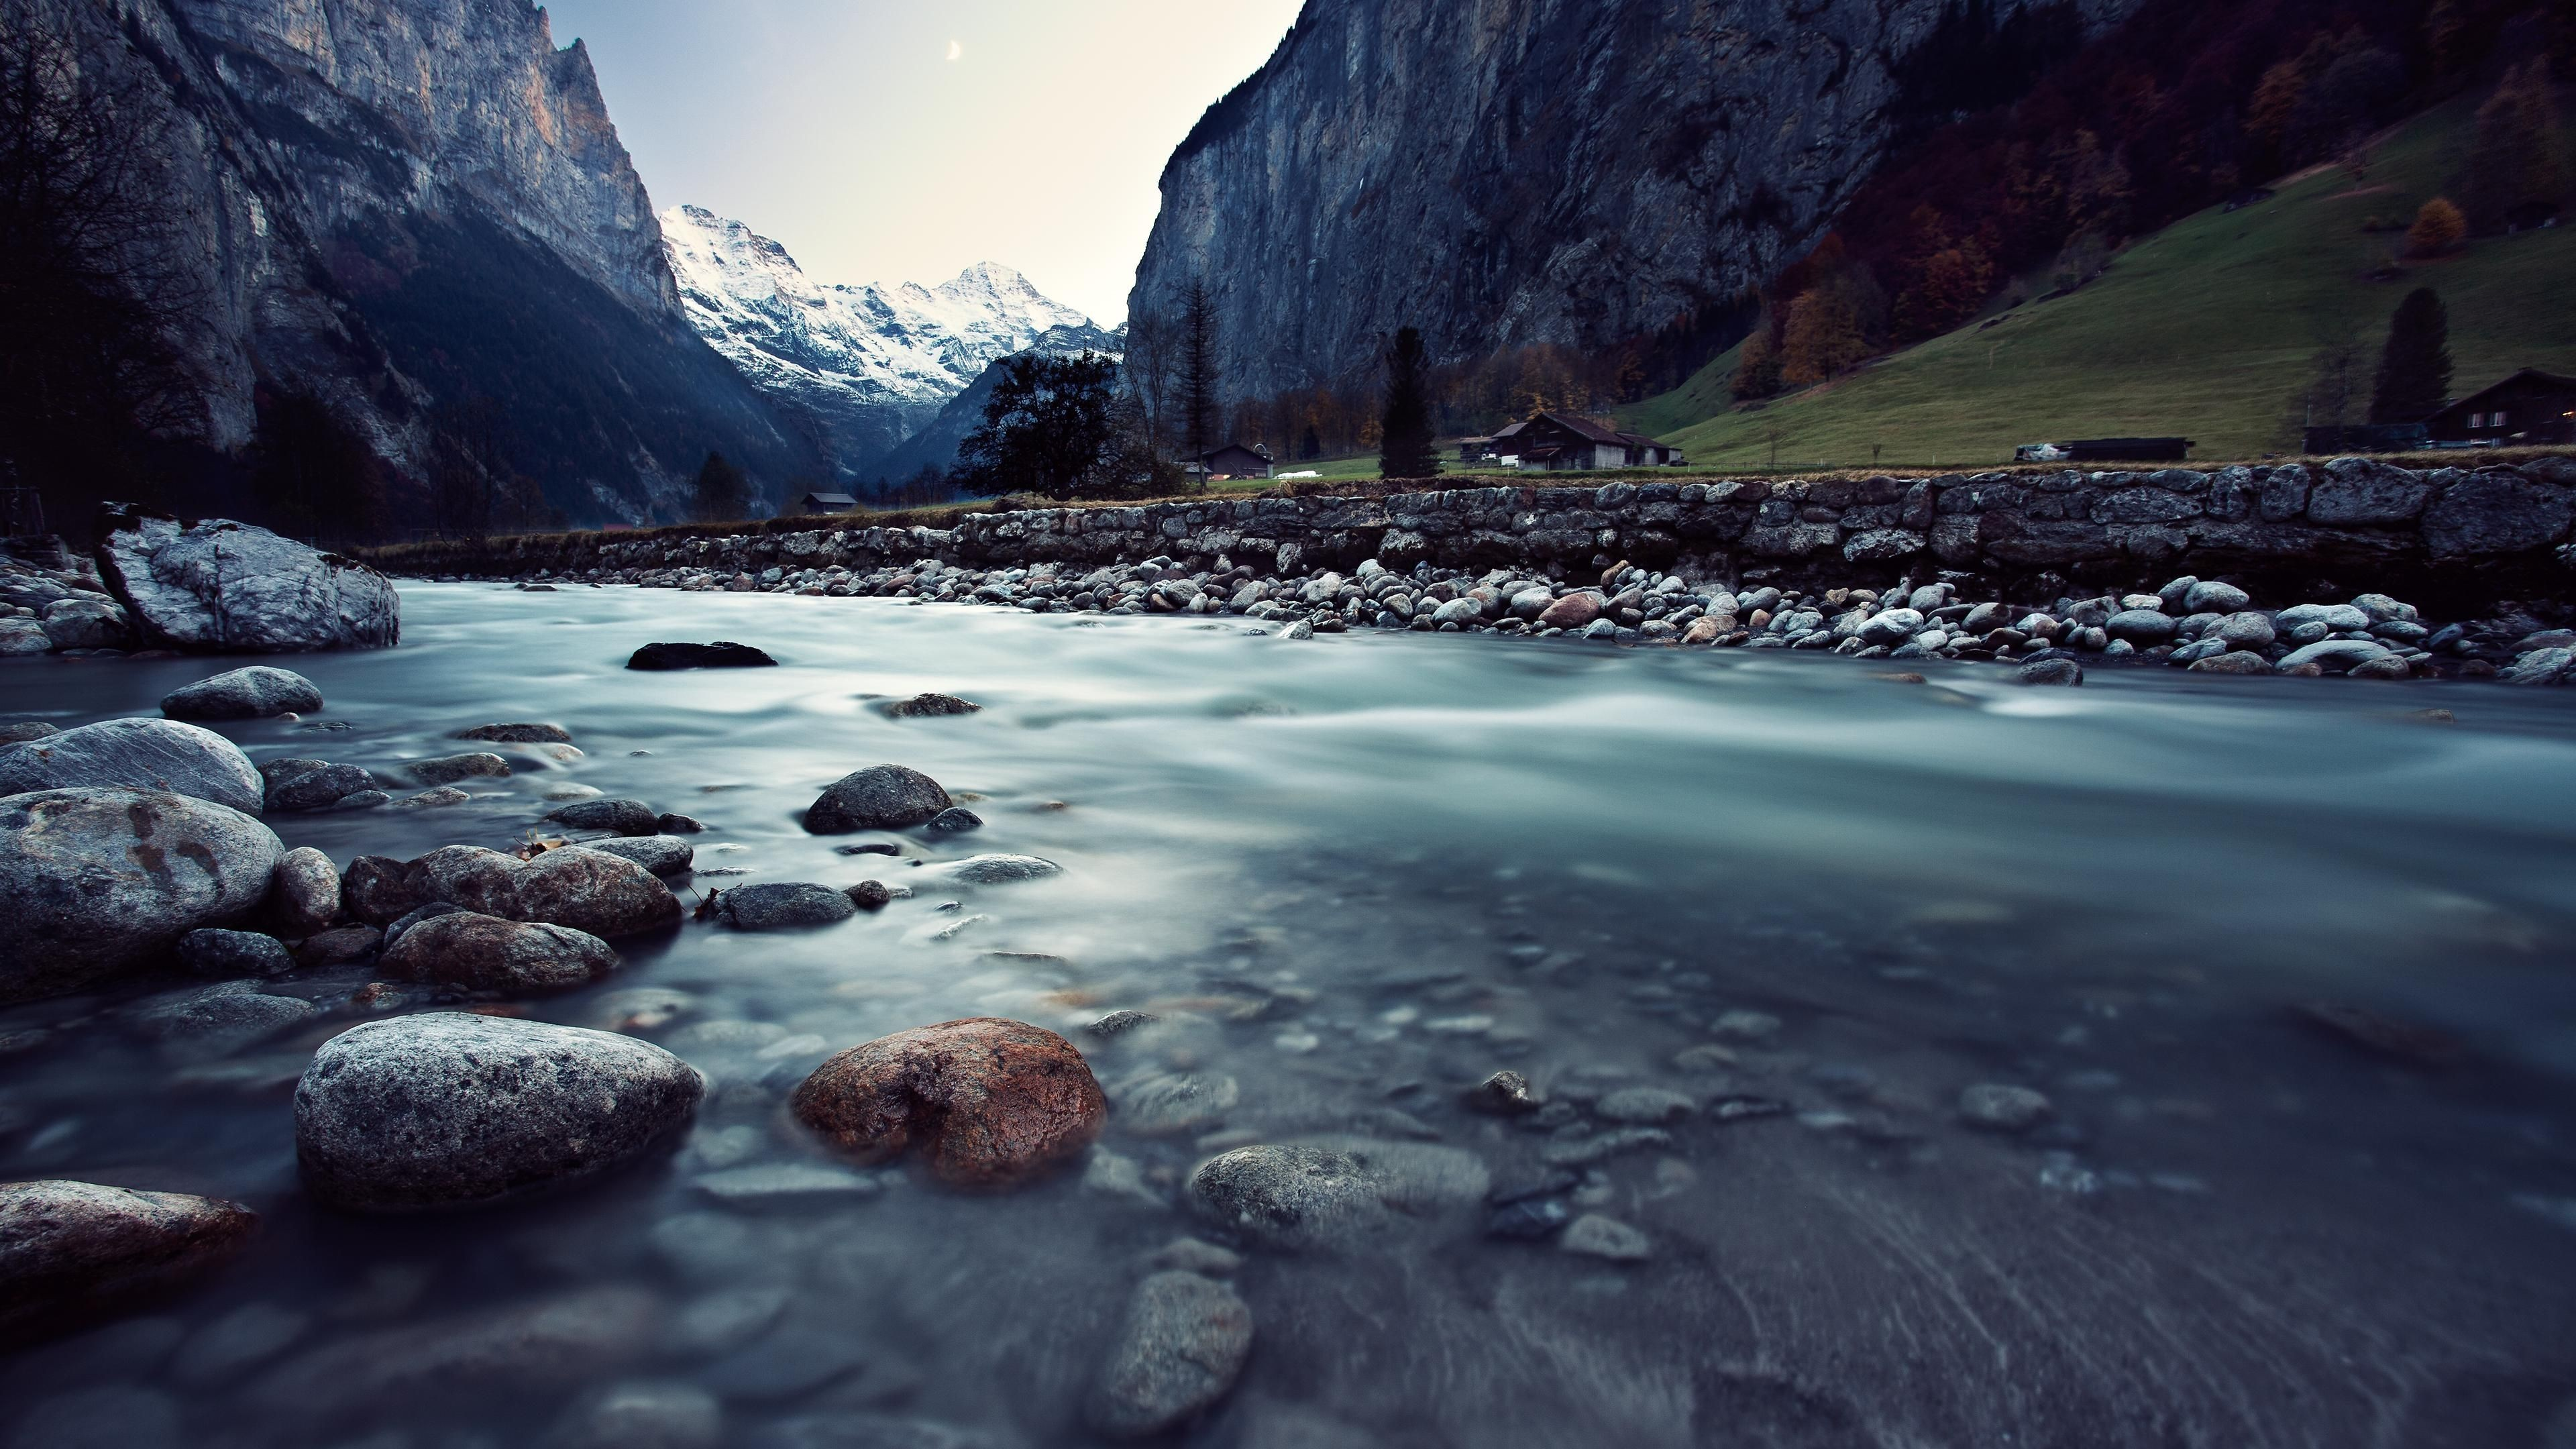 wallpaper switzerland, 4k, hd wallpaper, river, mountains, rocks